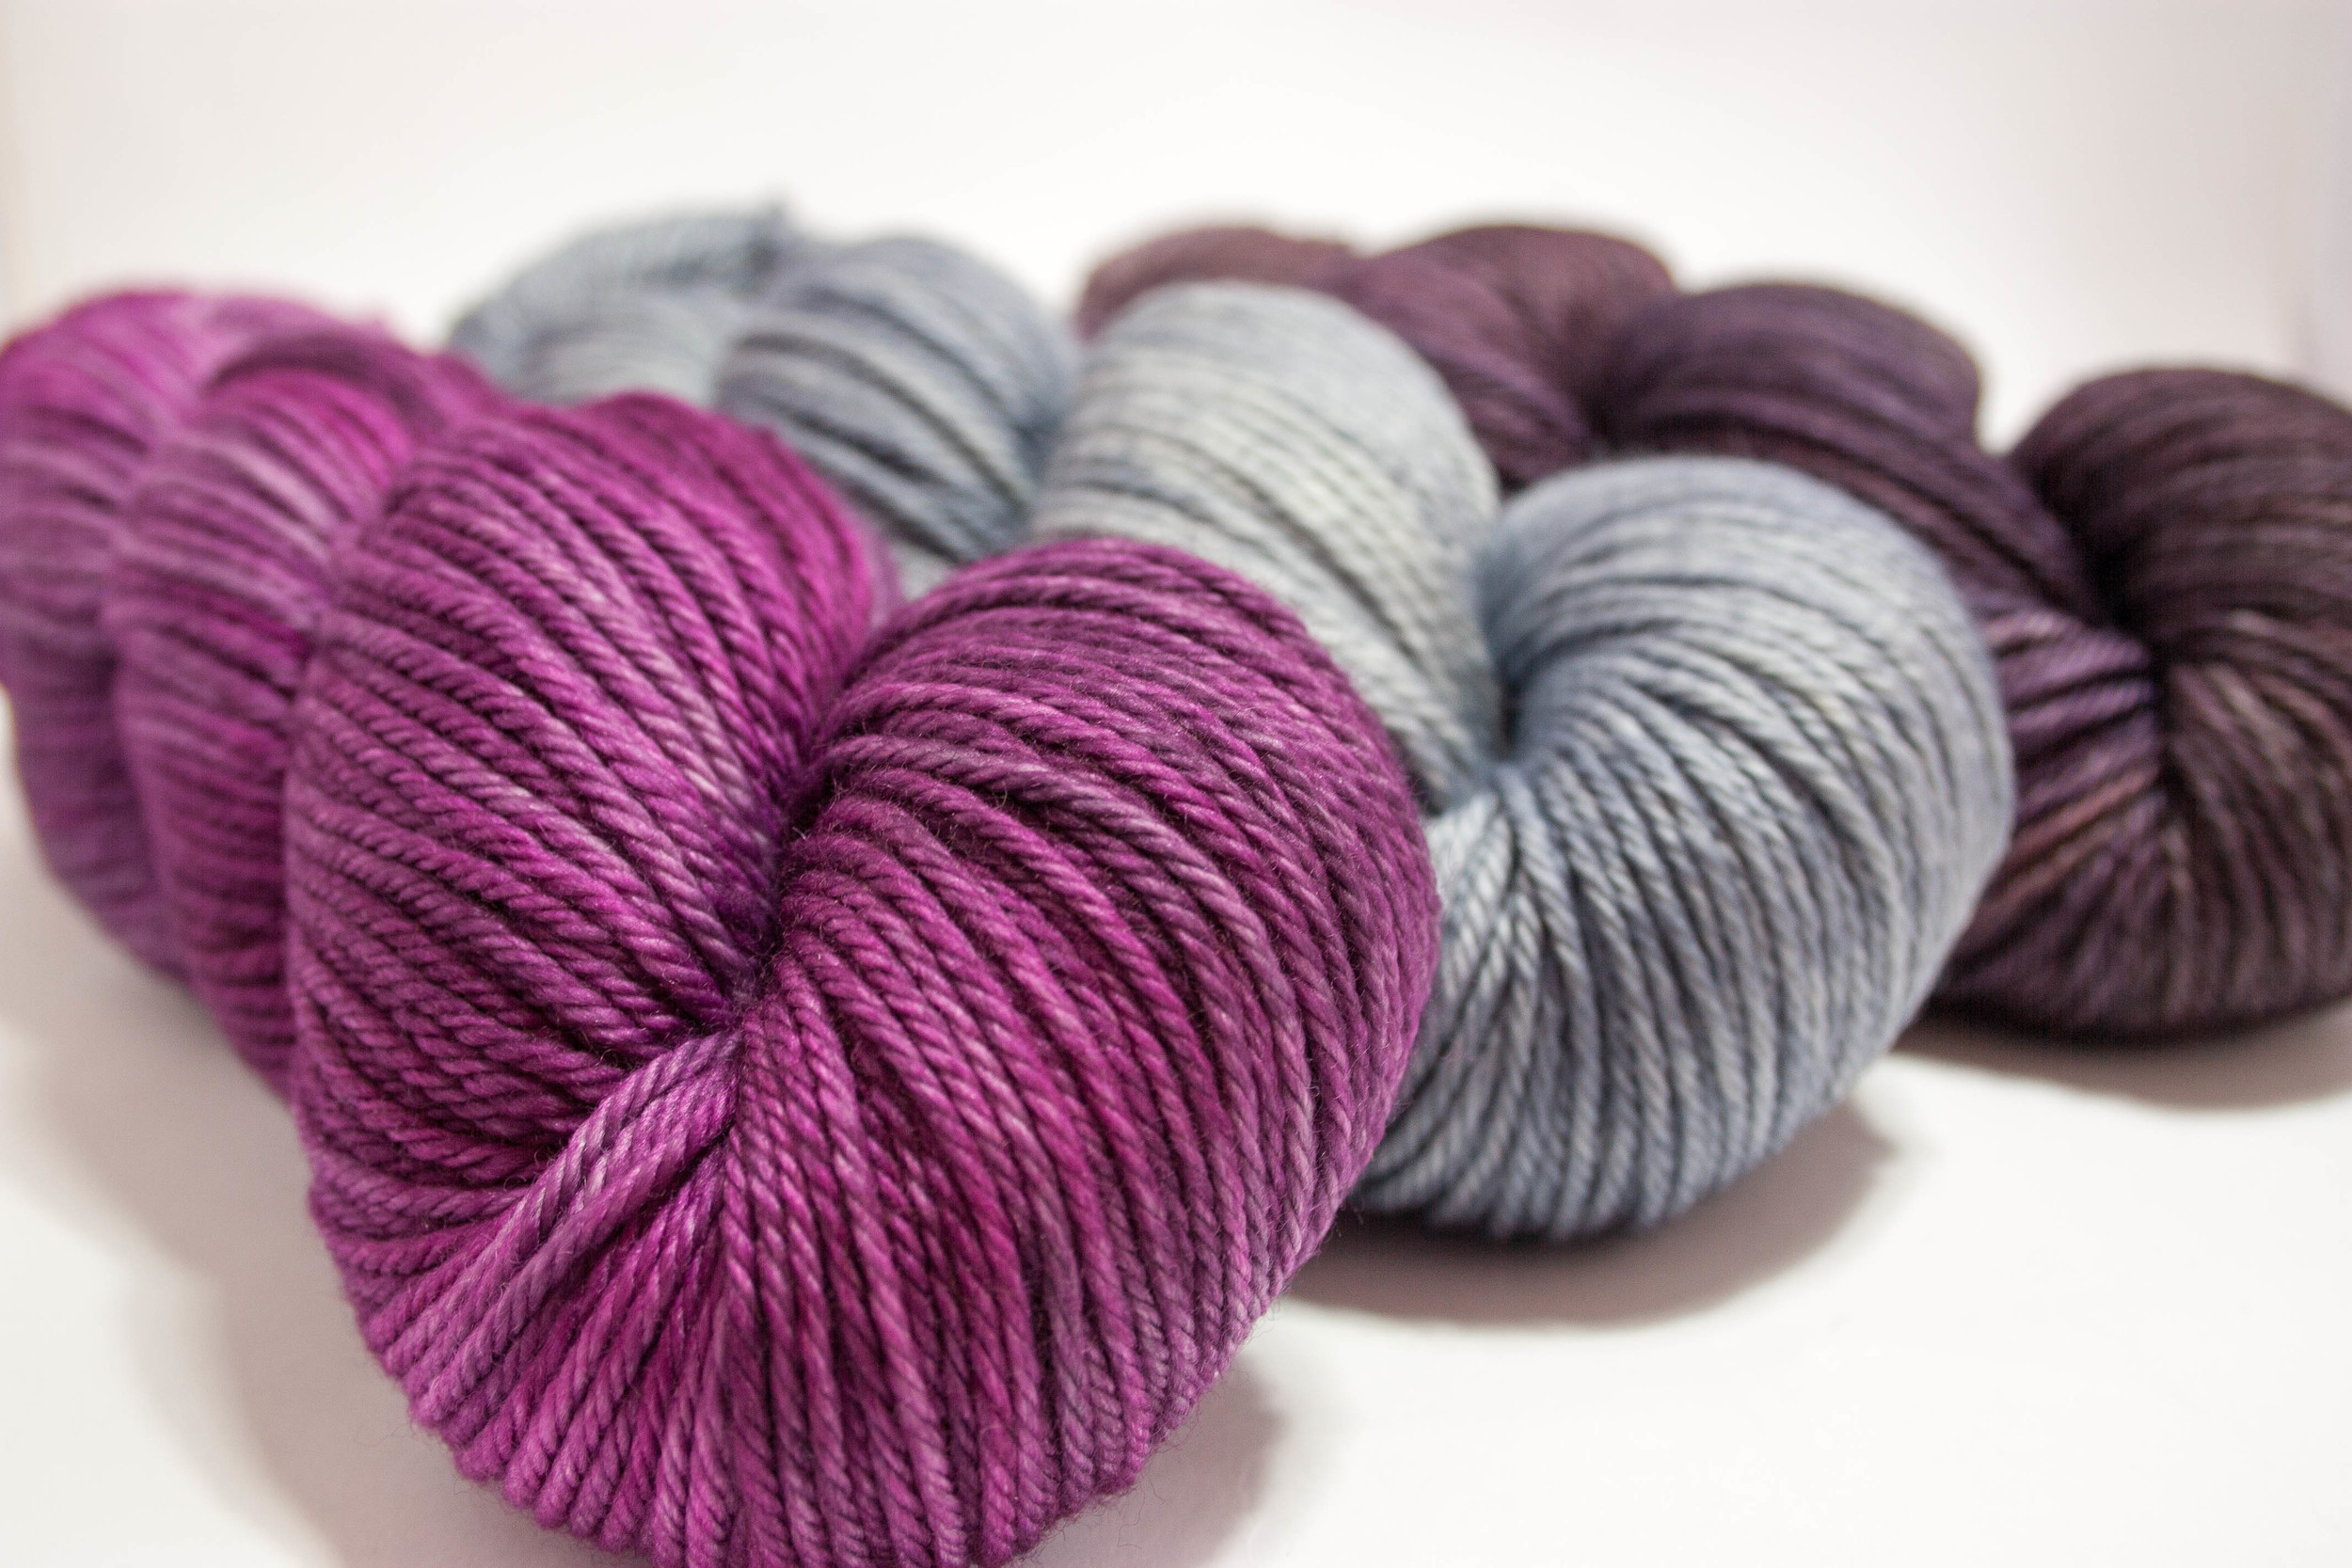 Some of the tempting hand dyed yarns available from Tangled Yarn